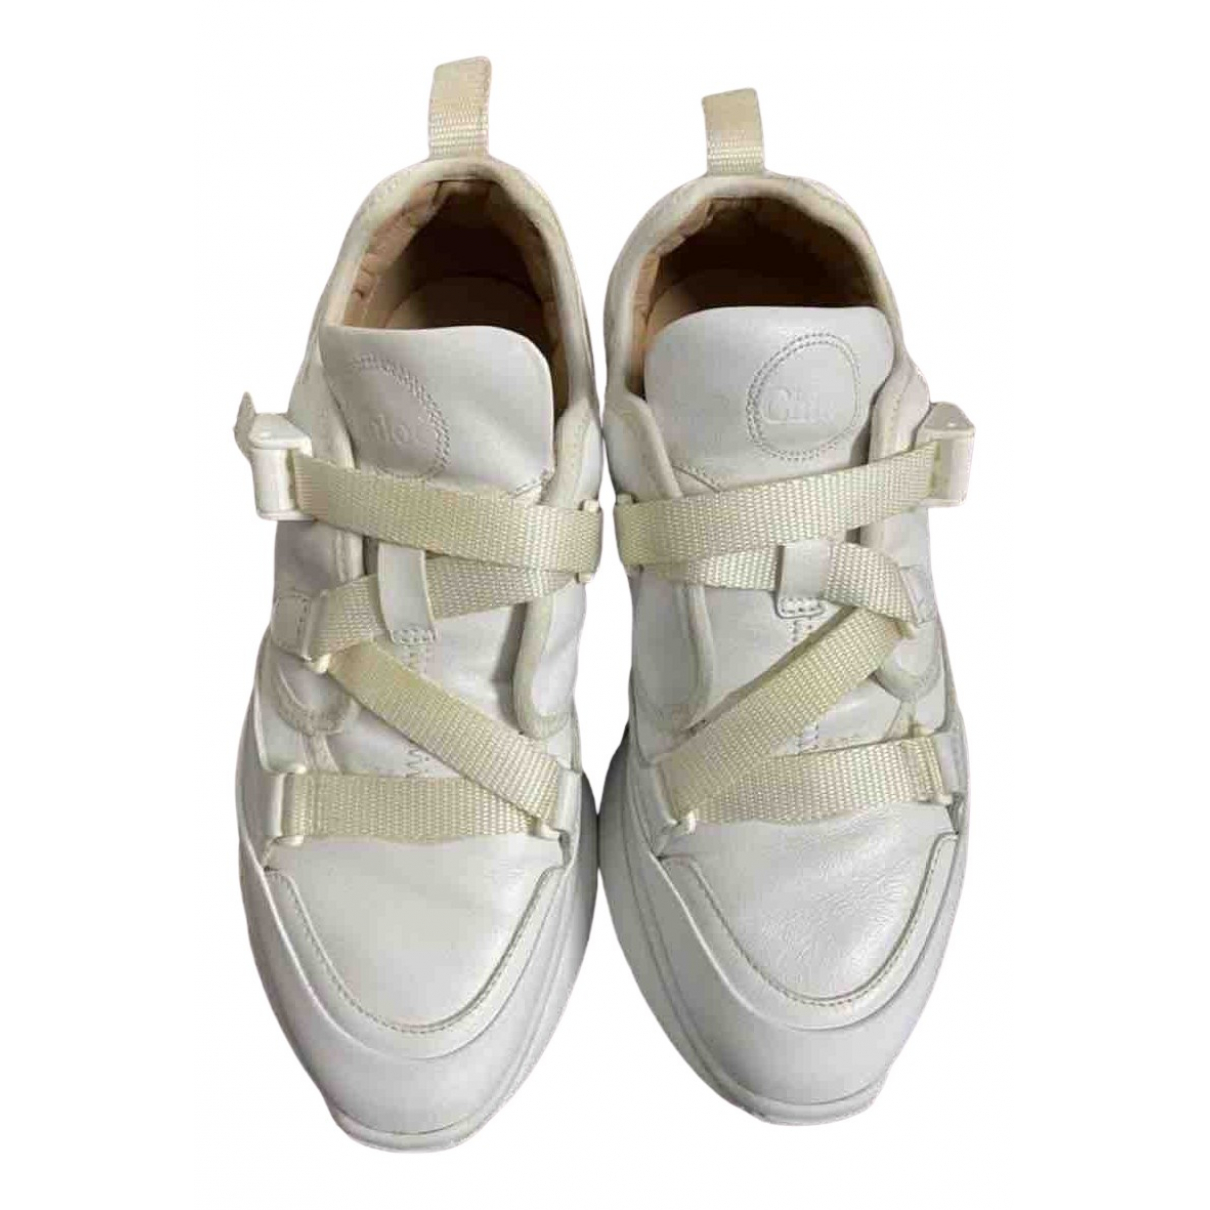 Chloe Sonnie Sneakers in  Weiss Polyester